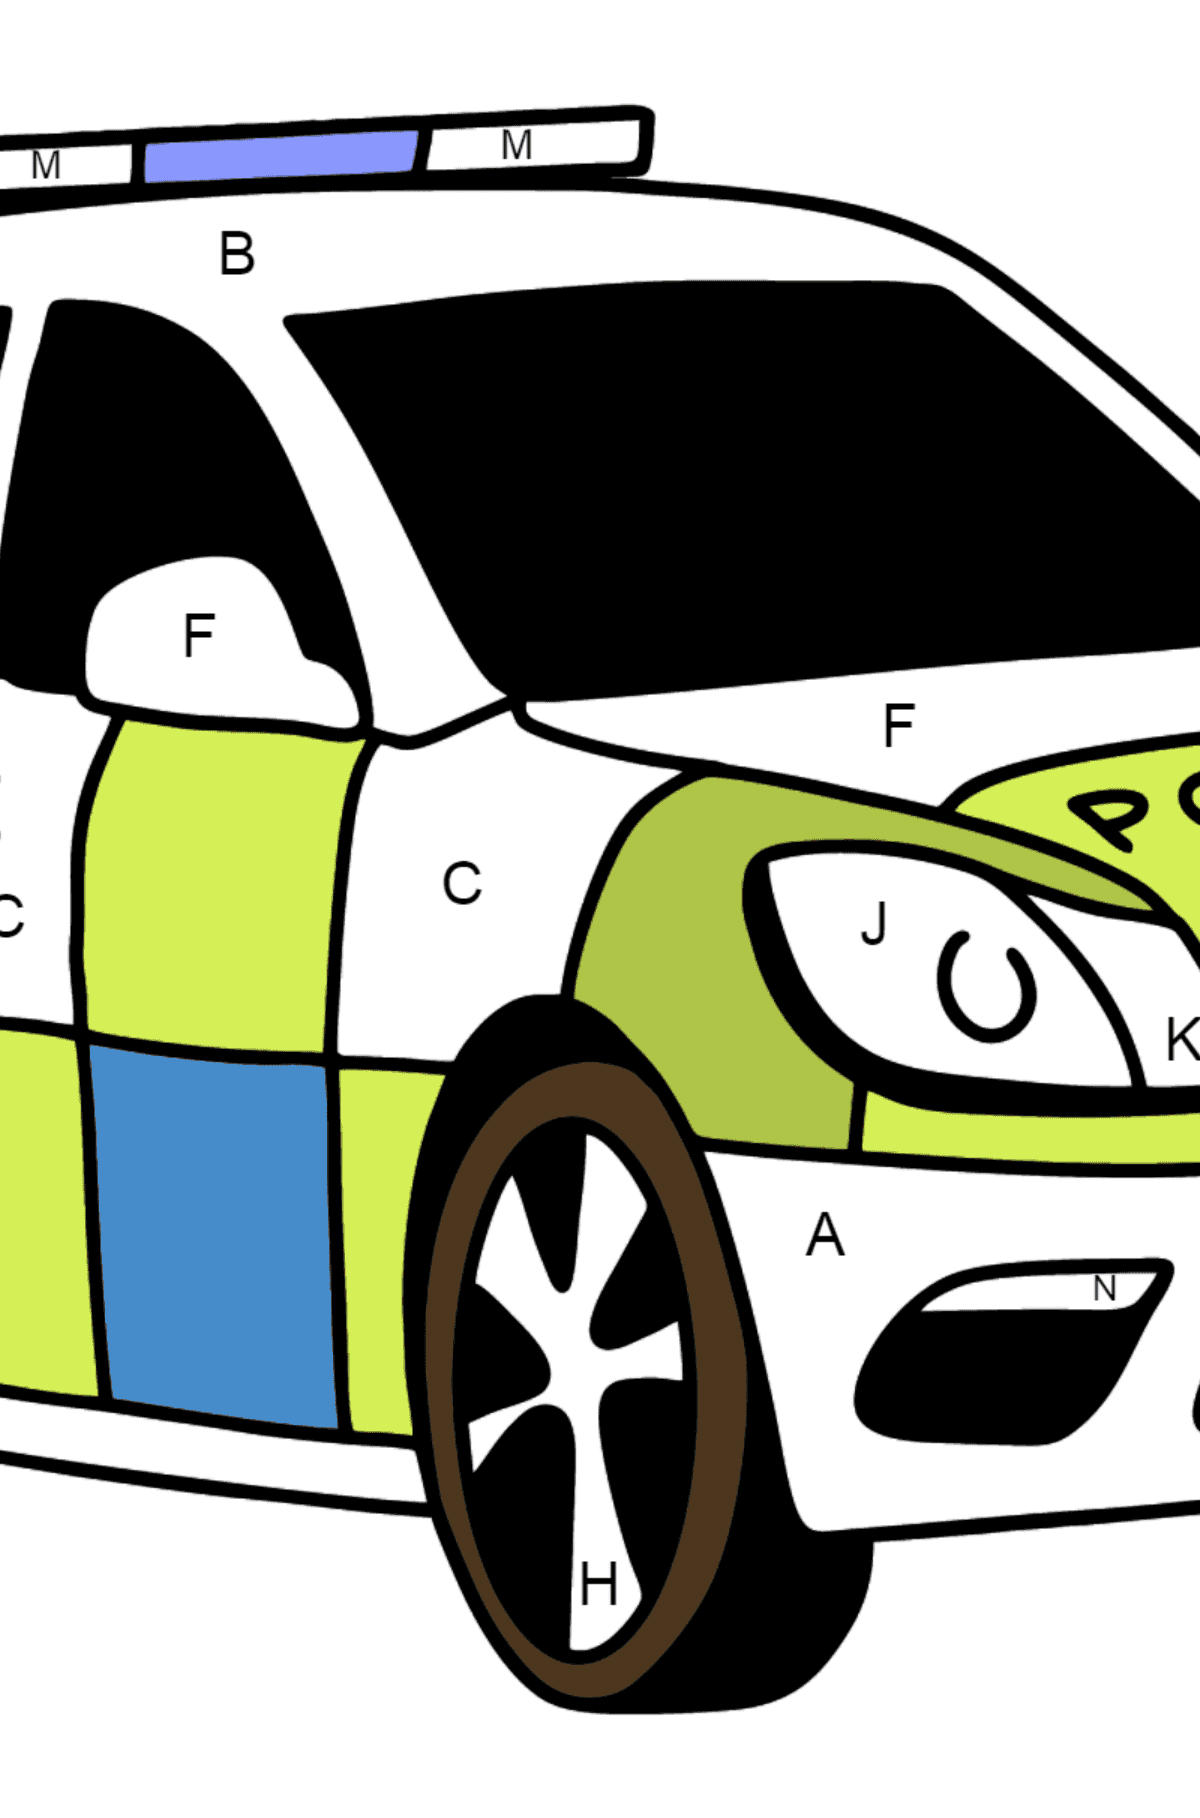 UK Police Car coloring page - Coloring by Letters for Kids